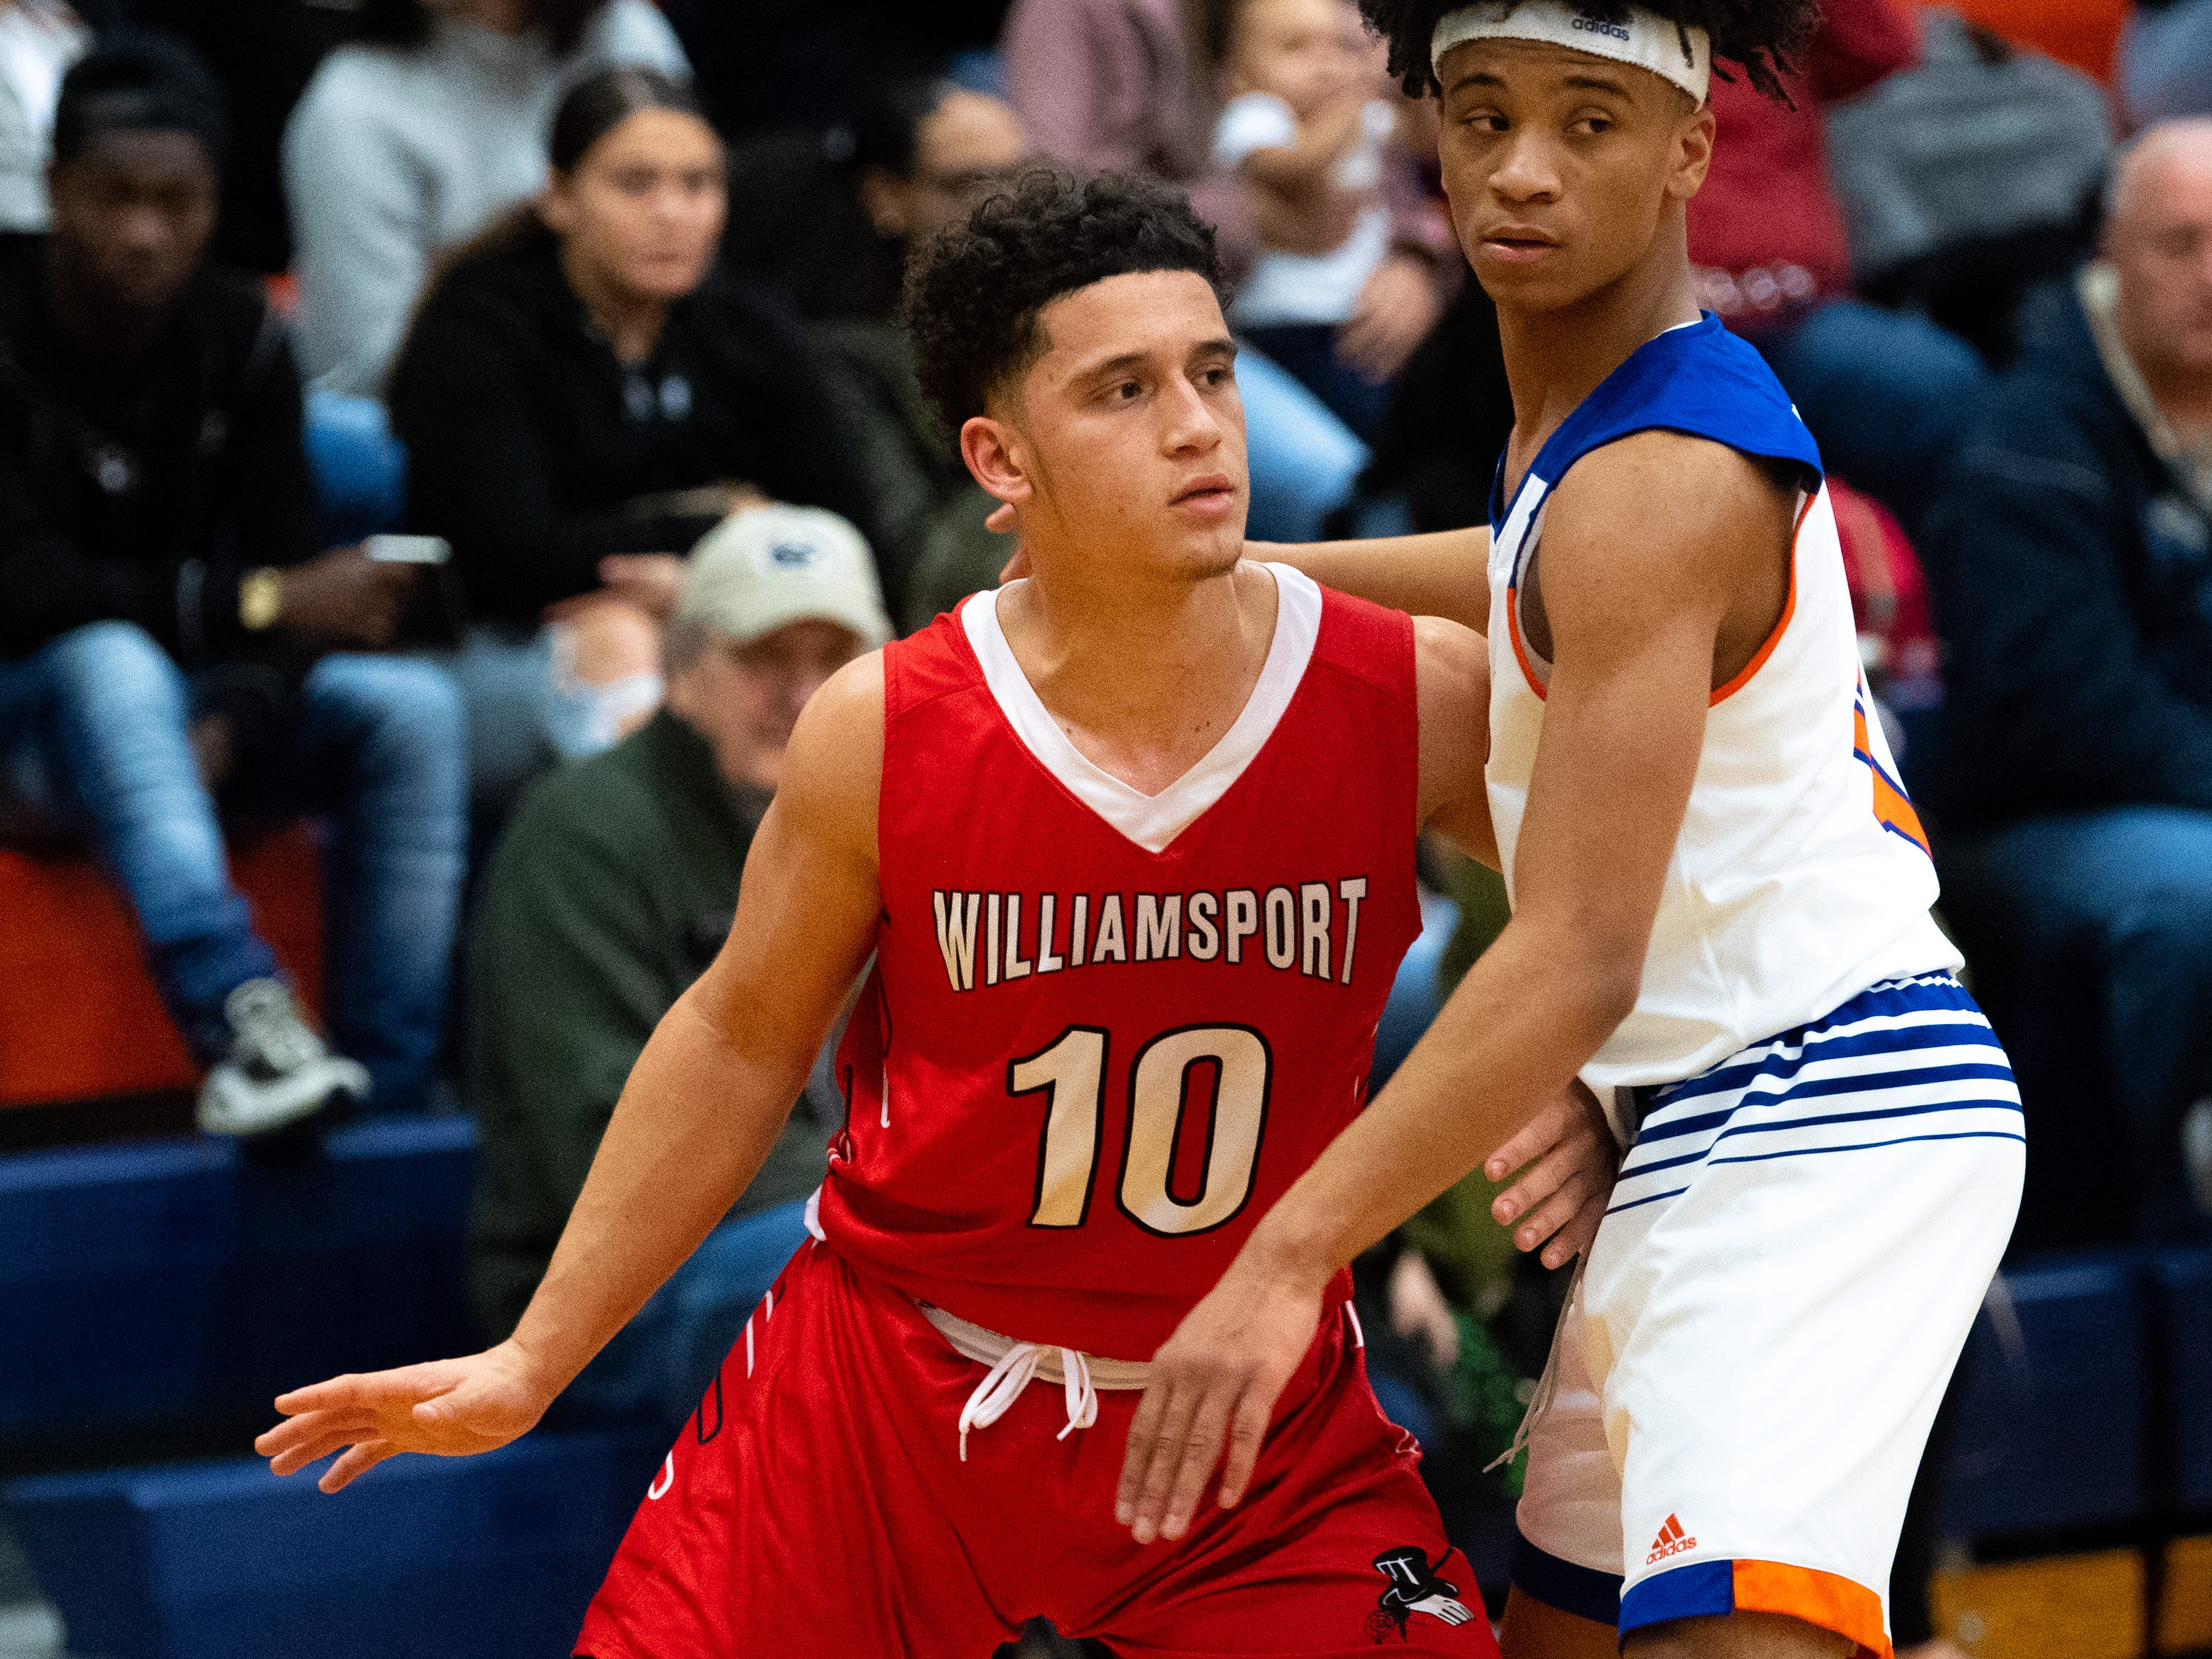 Marcus Simmons (10) of Williamsport tries to get open during the Tip-Off Tournament championship game, Saturday, December 8, 2018. The Bearcats defeated the Millionaires 74-47.